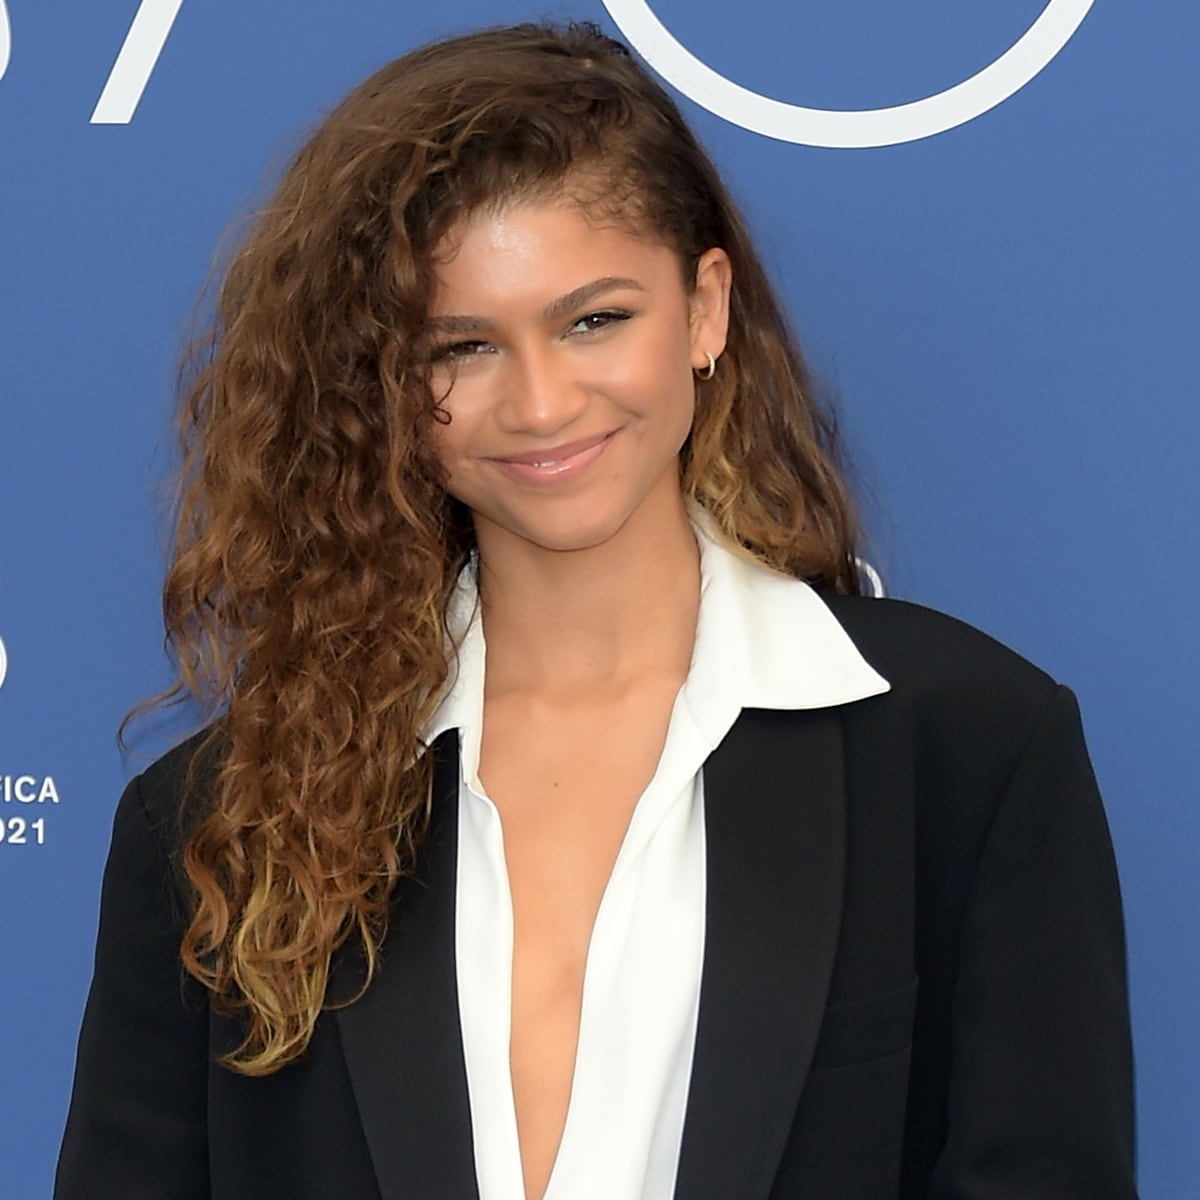 Actress and singer Zendaya is best known for the television comedy 'Shake It Up' and big-budget films like 'Dune,' 'Spider-Man: Homecoming' and 'The Greatest Showman'